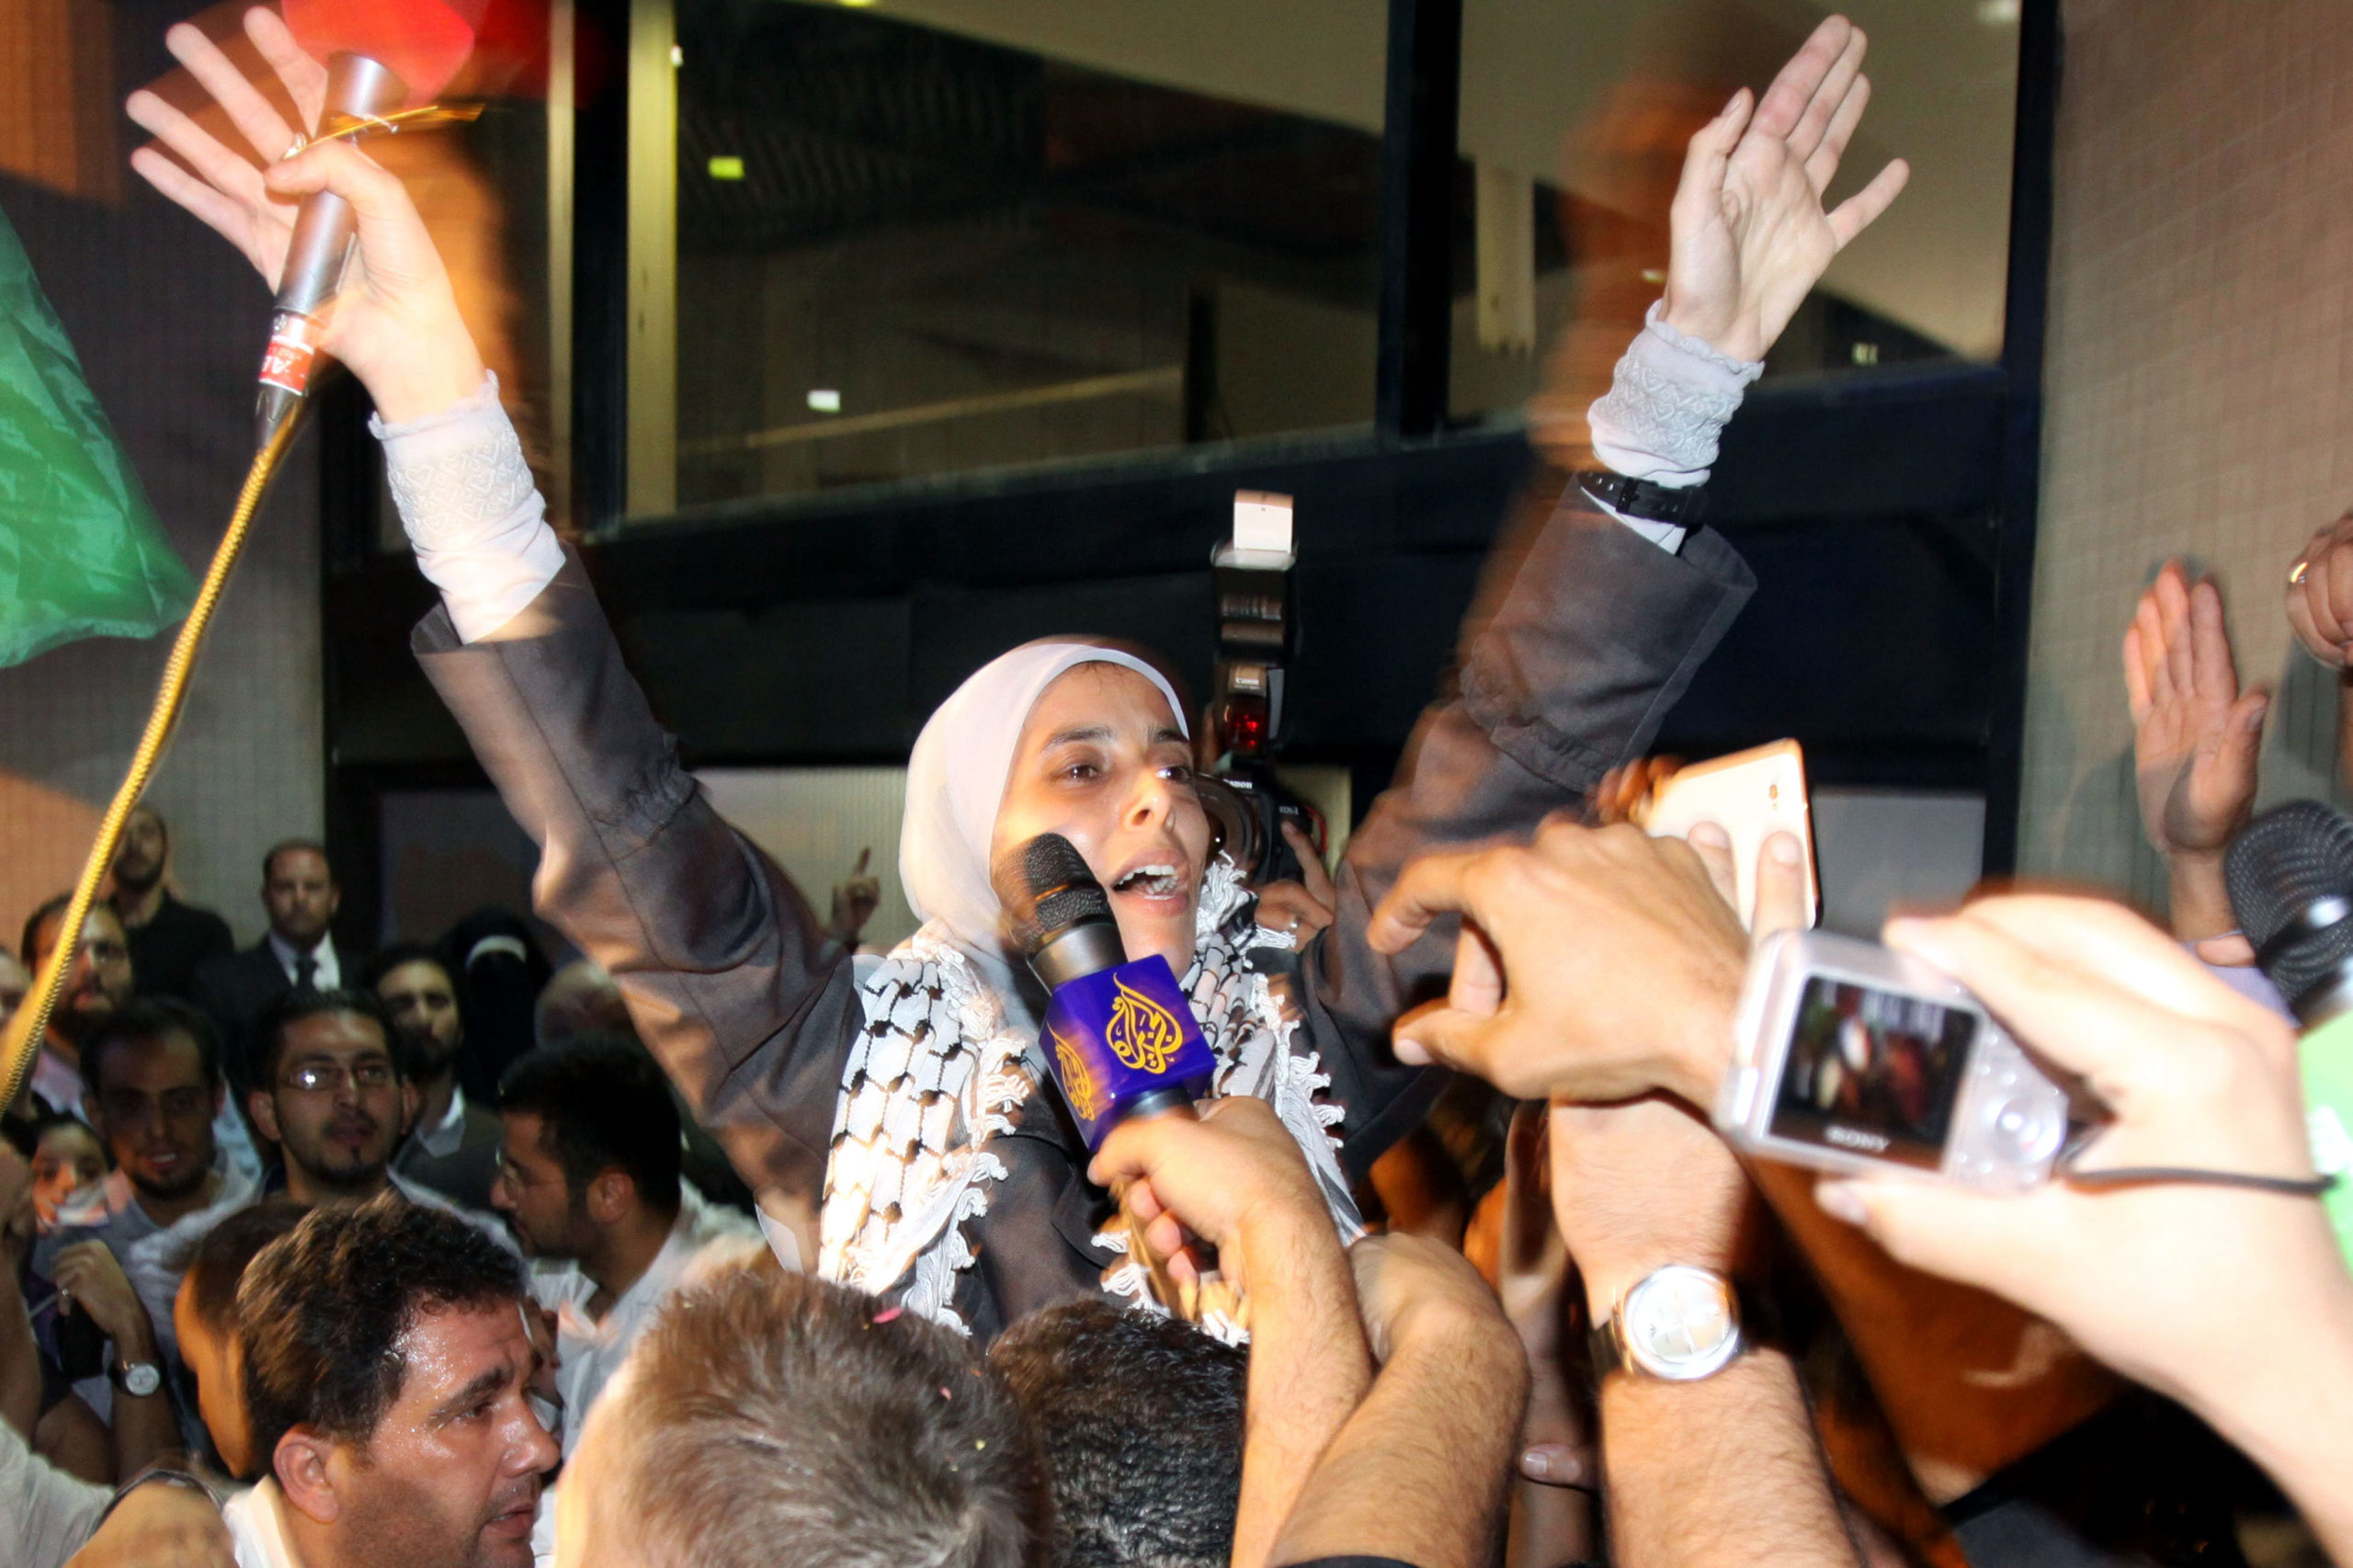 Jordanian freed prisoner Ahlam Tamimi waves as she arrives at Queen Alia international airport in Amman, late October 18, 2011. Ahlam was sentenced to 16 life terms in jail for her involvement in attacks on the Sbarro Pizzeria in Jerusalem in August 2001. The Palestinian Hamas movement exchanged Gilad Shalit, the Israeli soldier who spent more than five years of isolation in a Gaza hide-out, for hundreds of Palestinian militants being held in palestinian jails. (Photo credits: LOUAI BESHARA/AFP via Getty Images)